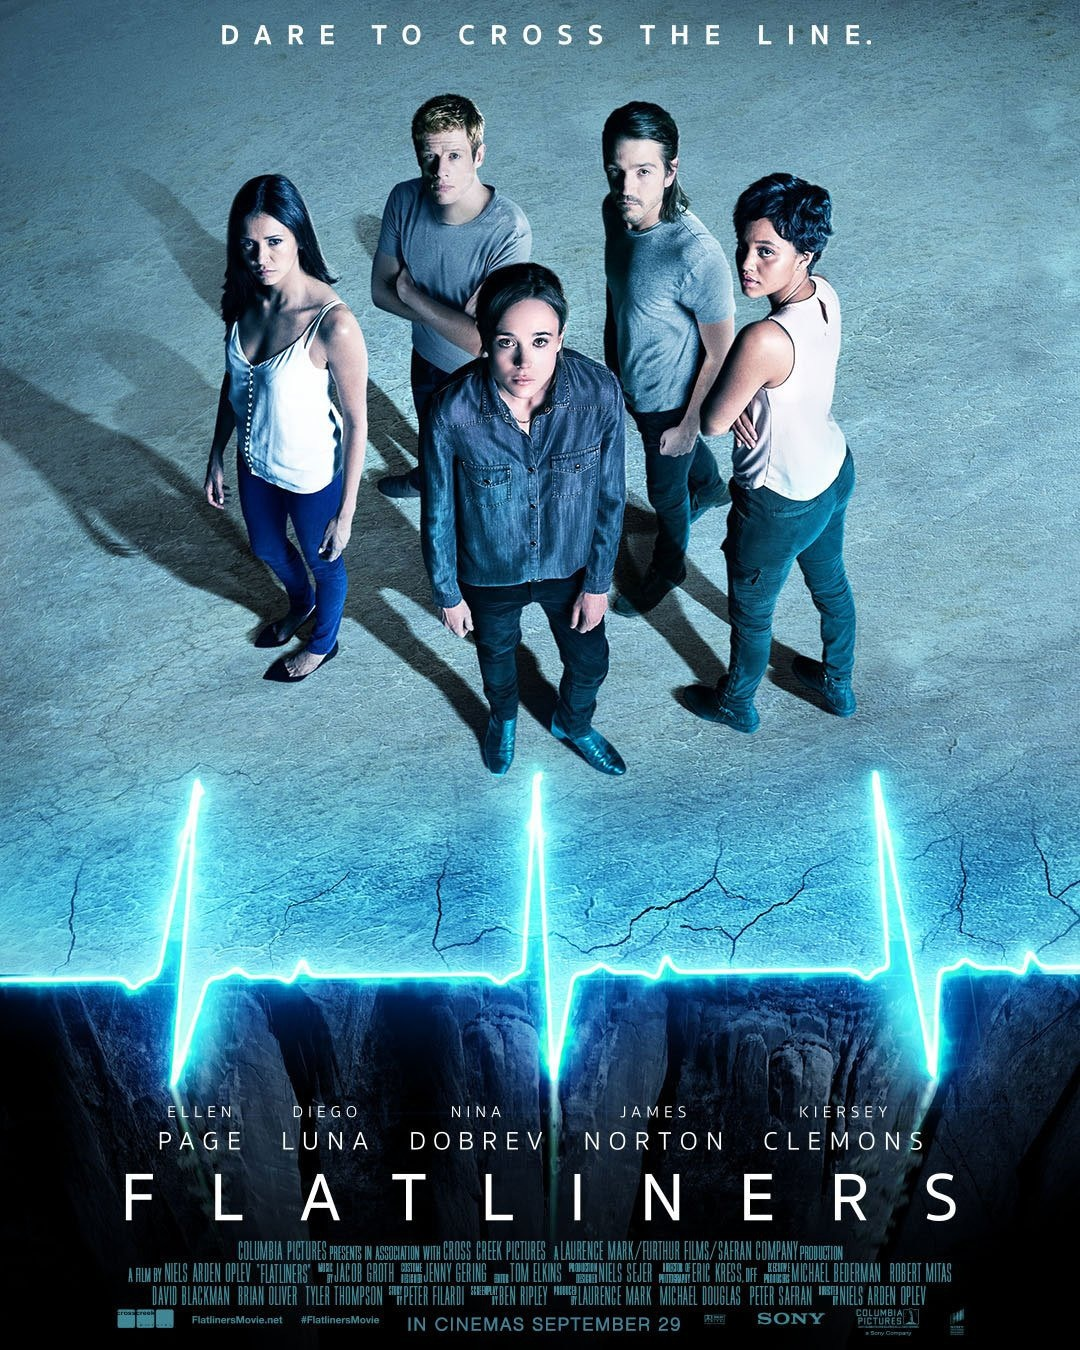 Flatliners poster 1 - Get Shocked By This New Flatliners Trailer